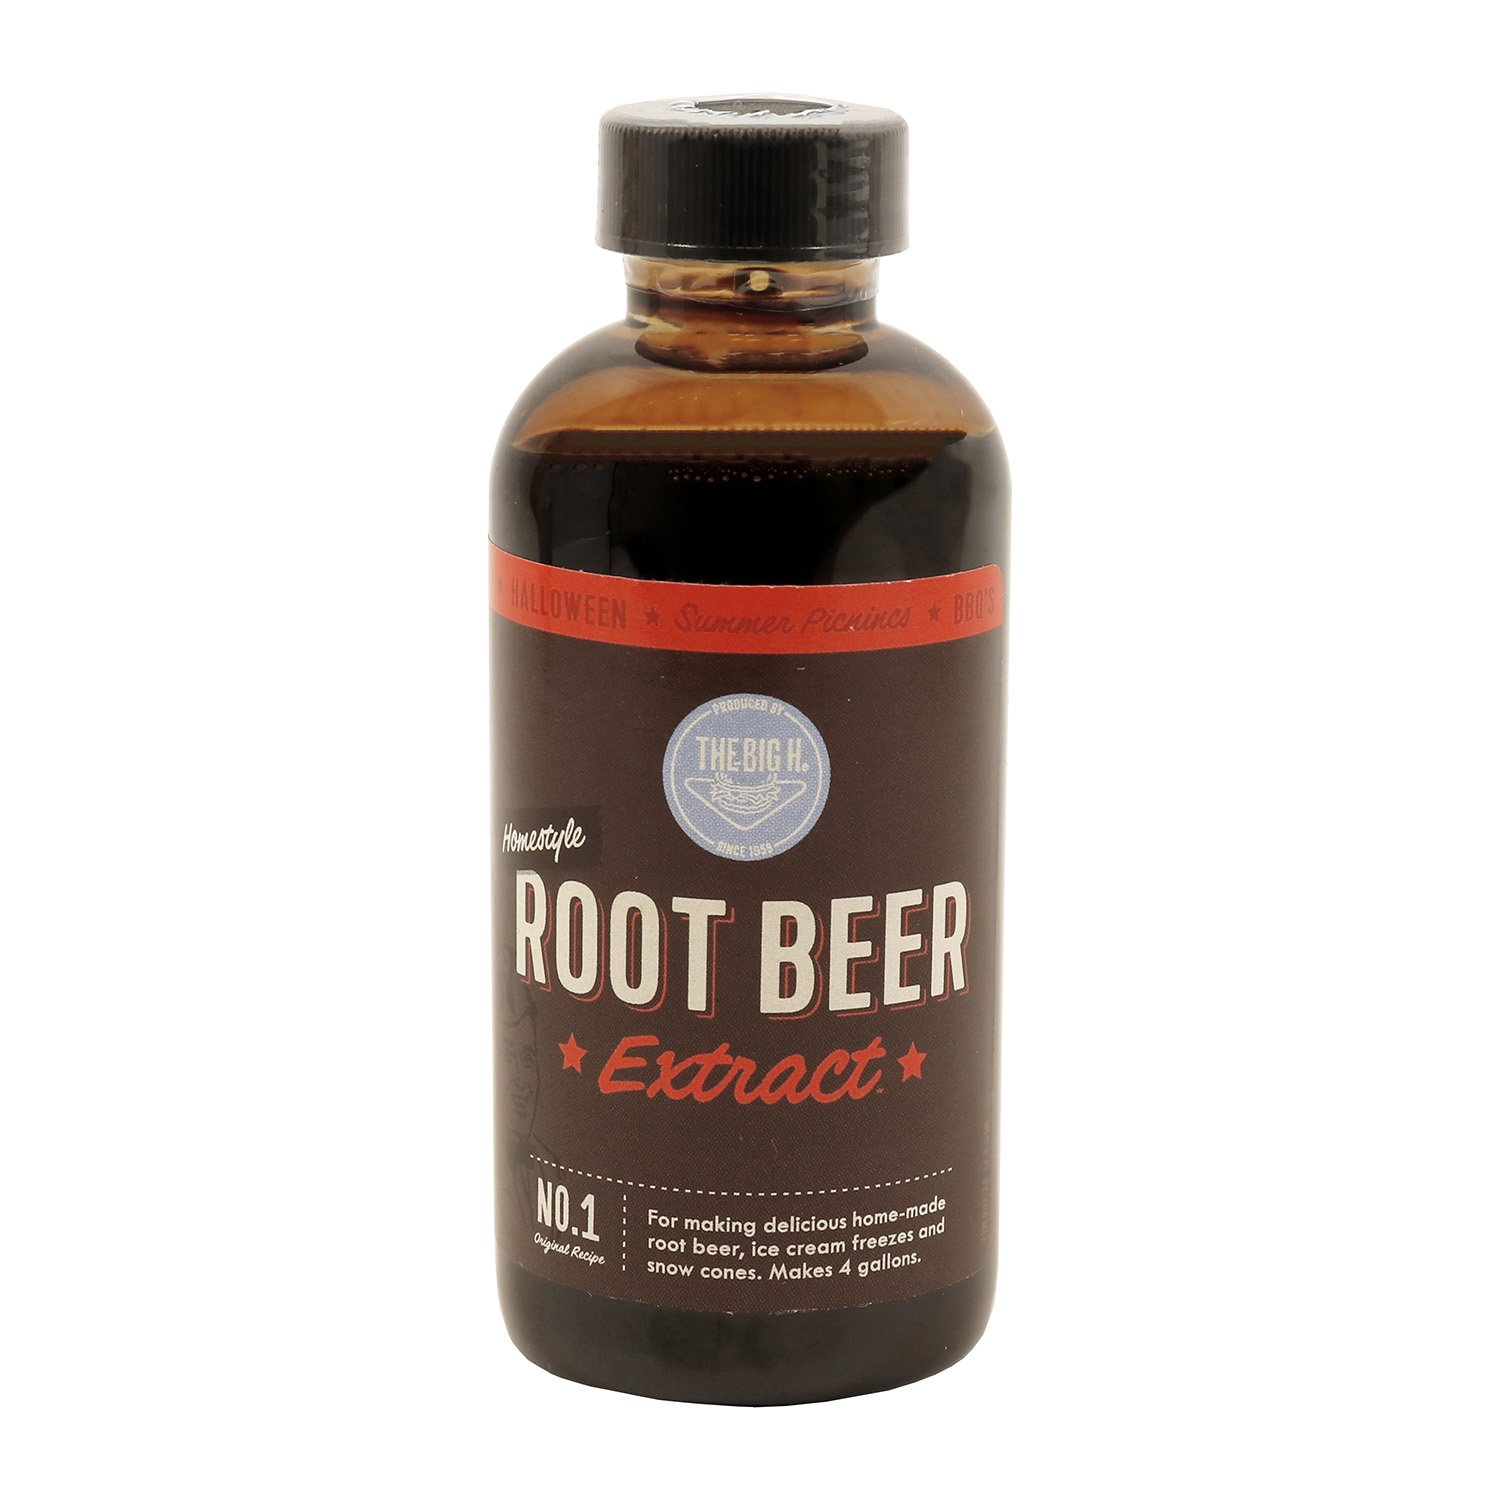 Hires Big H Root Beer Extract, Make Your Own Root Beer - 1 Pack by Hires Big H